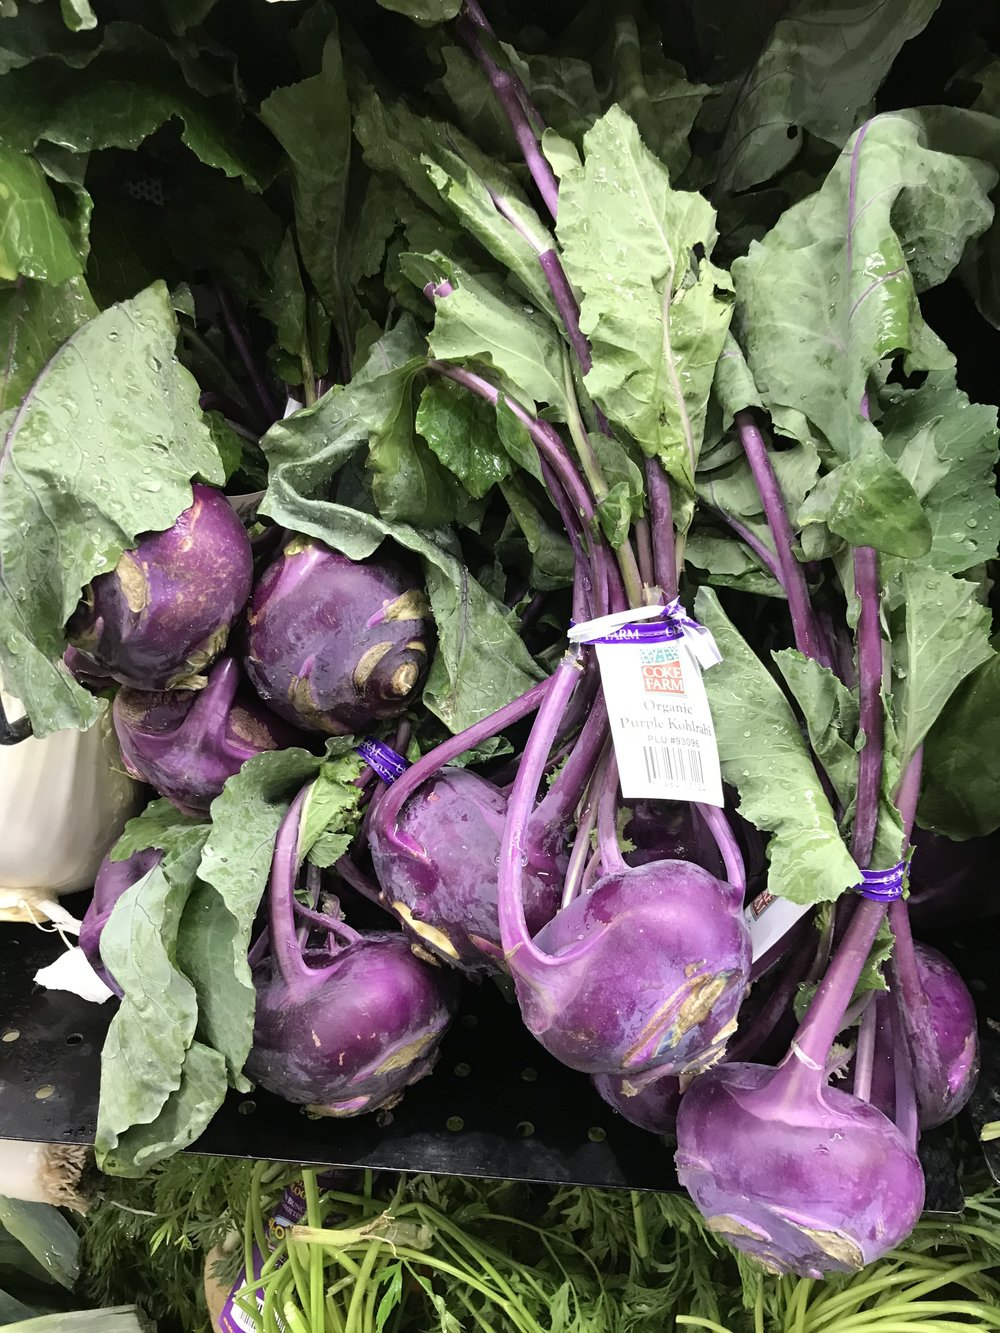 Delicious Kohlrabi! Peel, slice and eat like that or add to salads. This is one of my favorite veggies. It's kind of sweet!